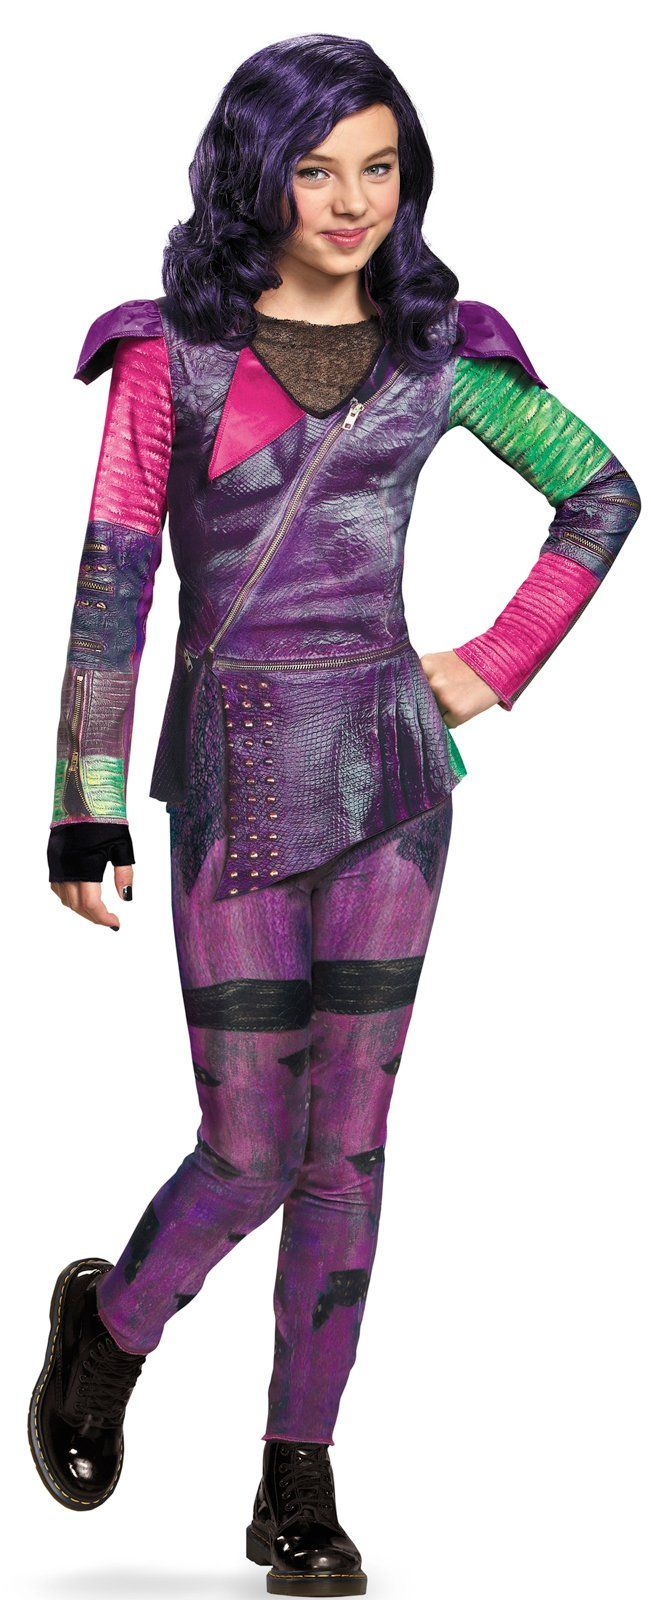 Disney's Descendants: Mal Isle of the Lost Classic Costume For Girls from CostumeExpress.com